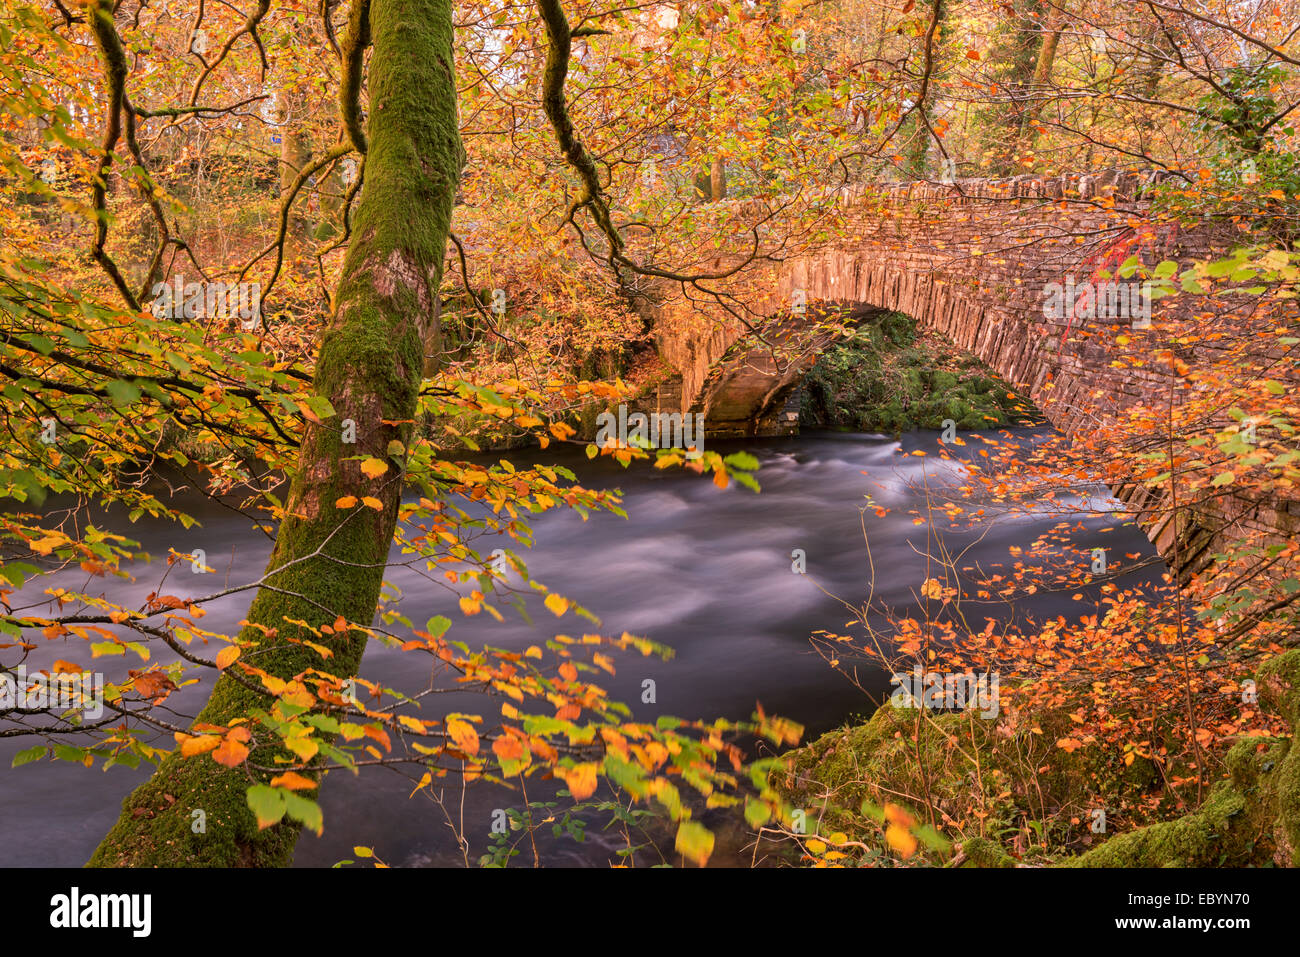 Colourful autumnal foliage on the banks of the River Brathay near Clappersgate Bridge, Lake District, Cumbria, England. - Stock Image